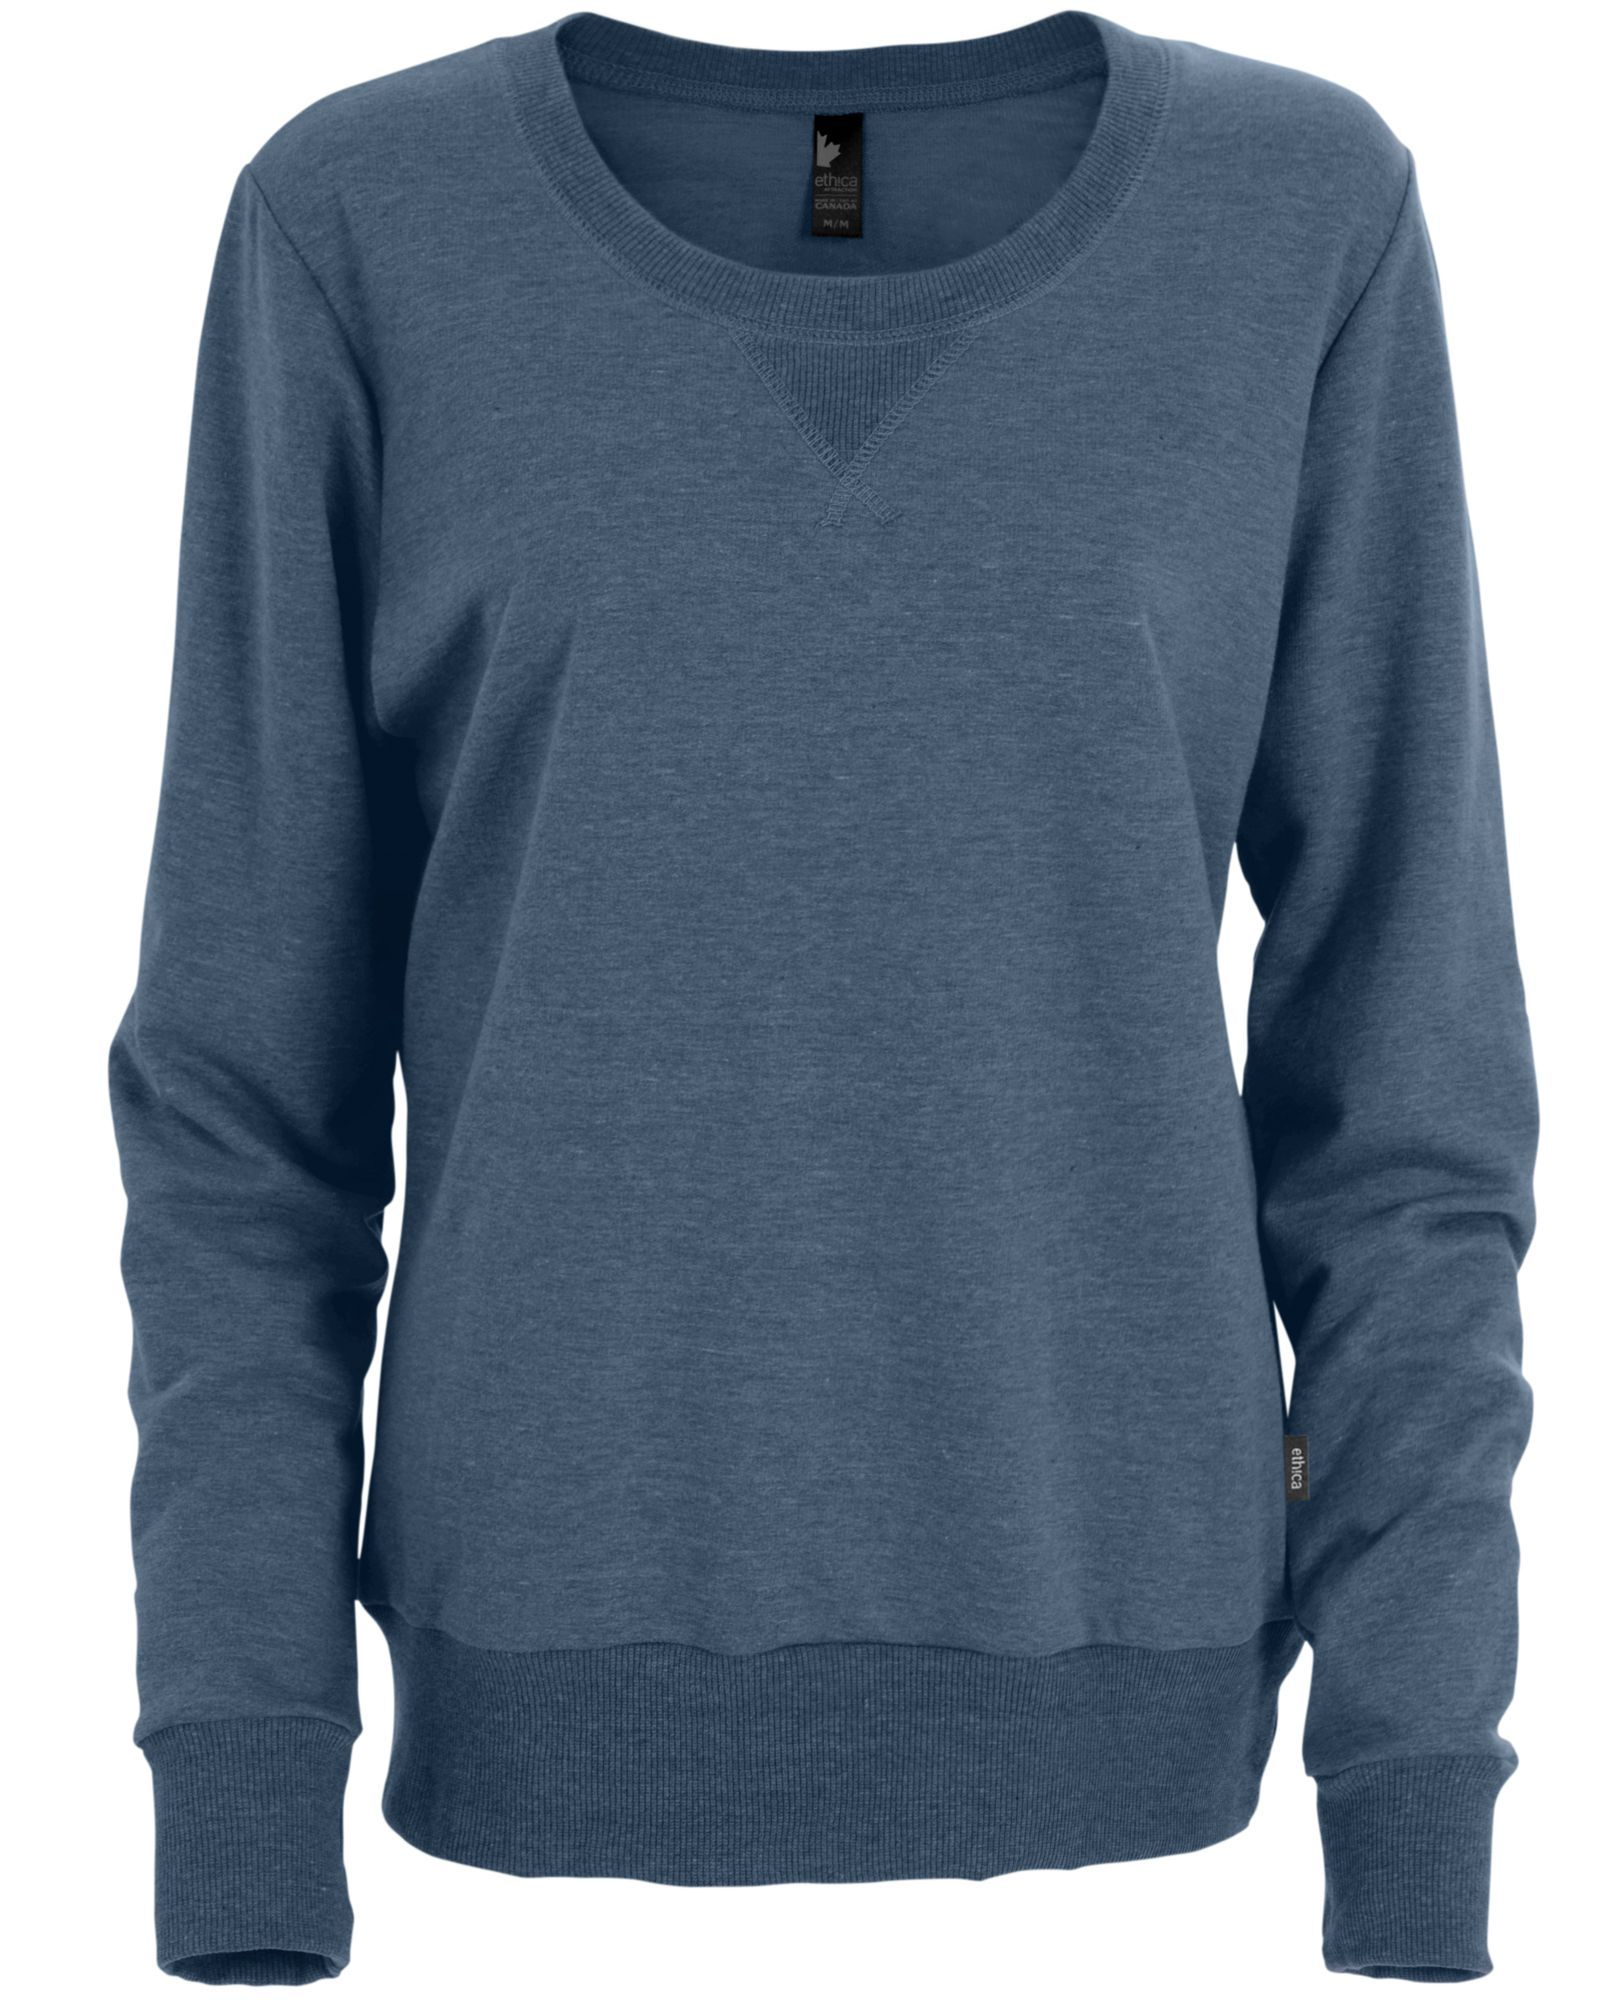 Ethica crew-neck sweater | French Terry | Heather navy | L1G Made in Canada